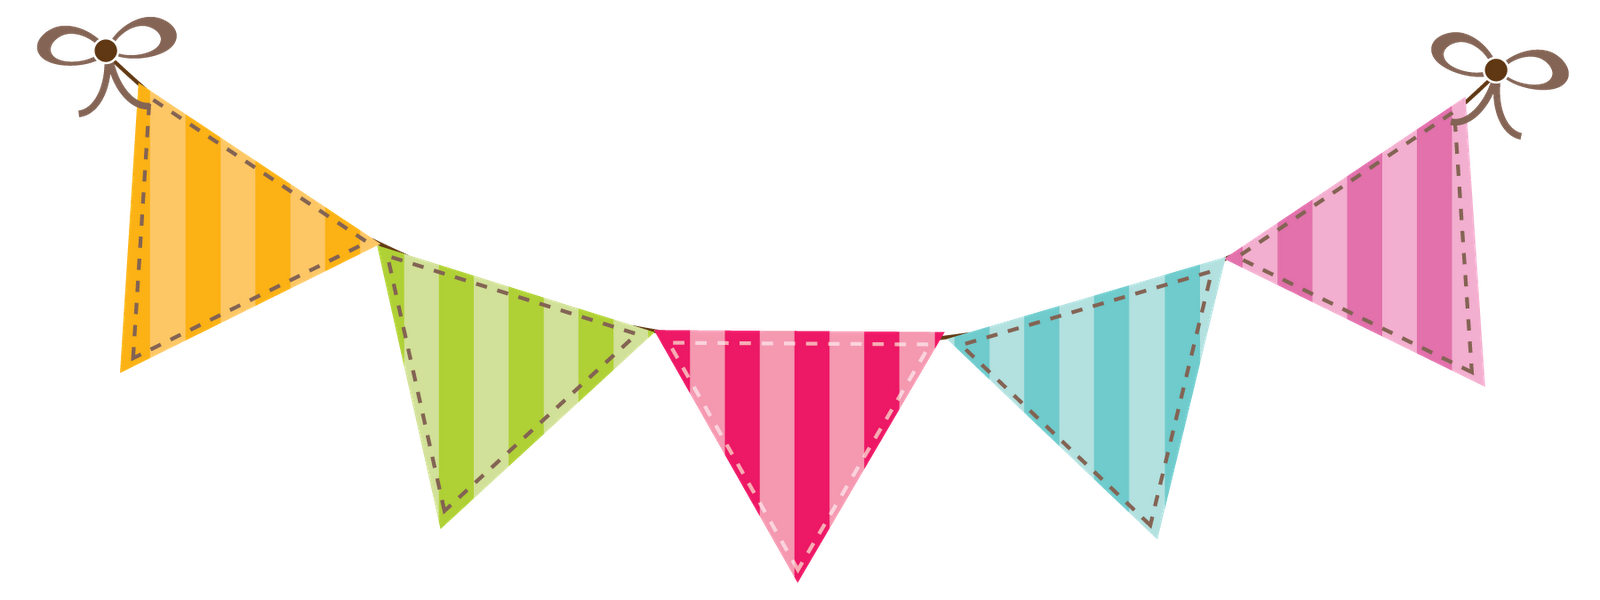 freeuse stock Papel picado clipart.  images of transparent